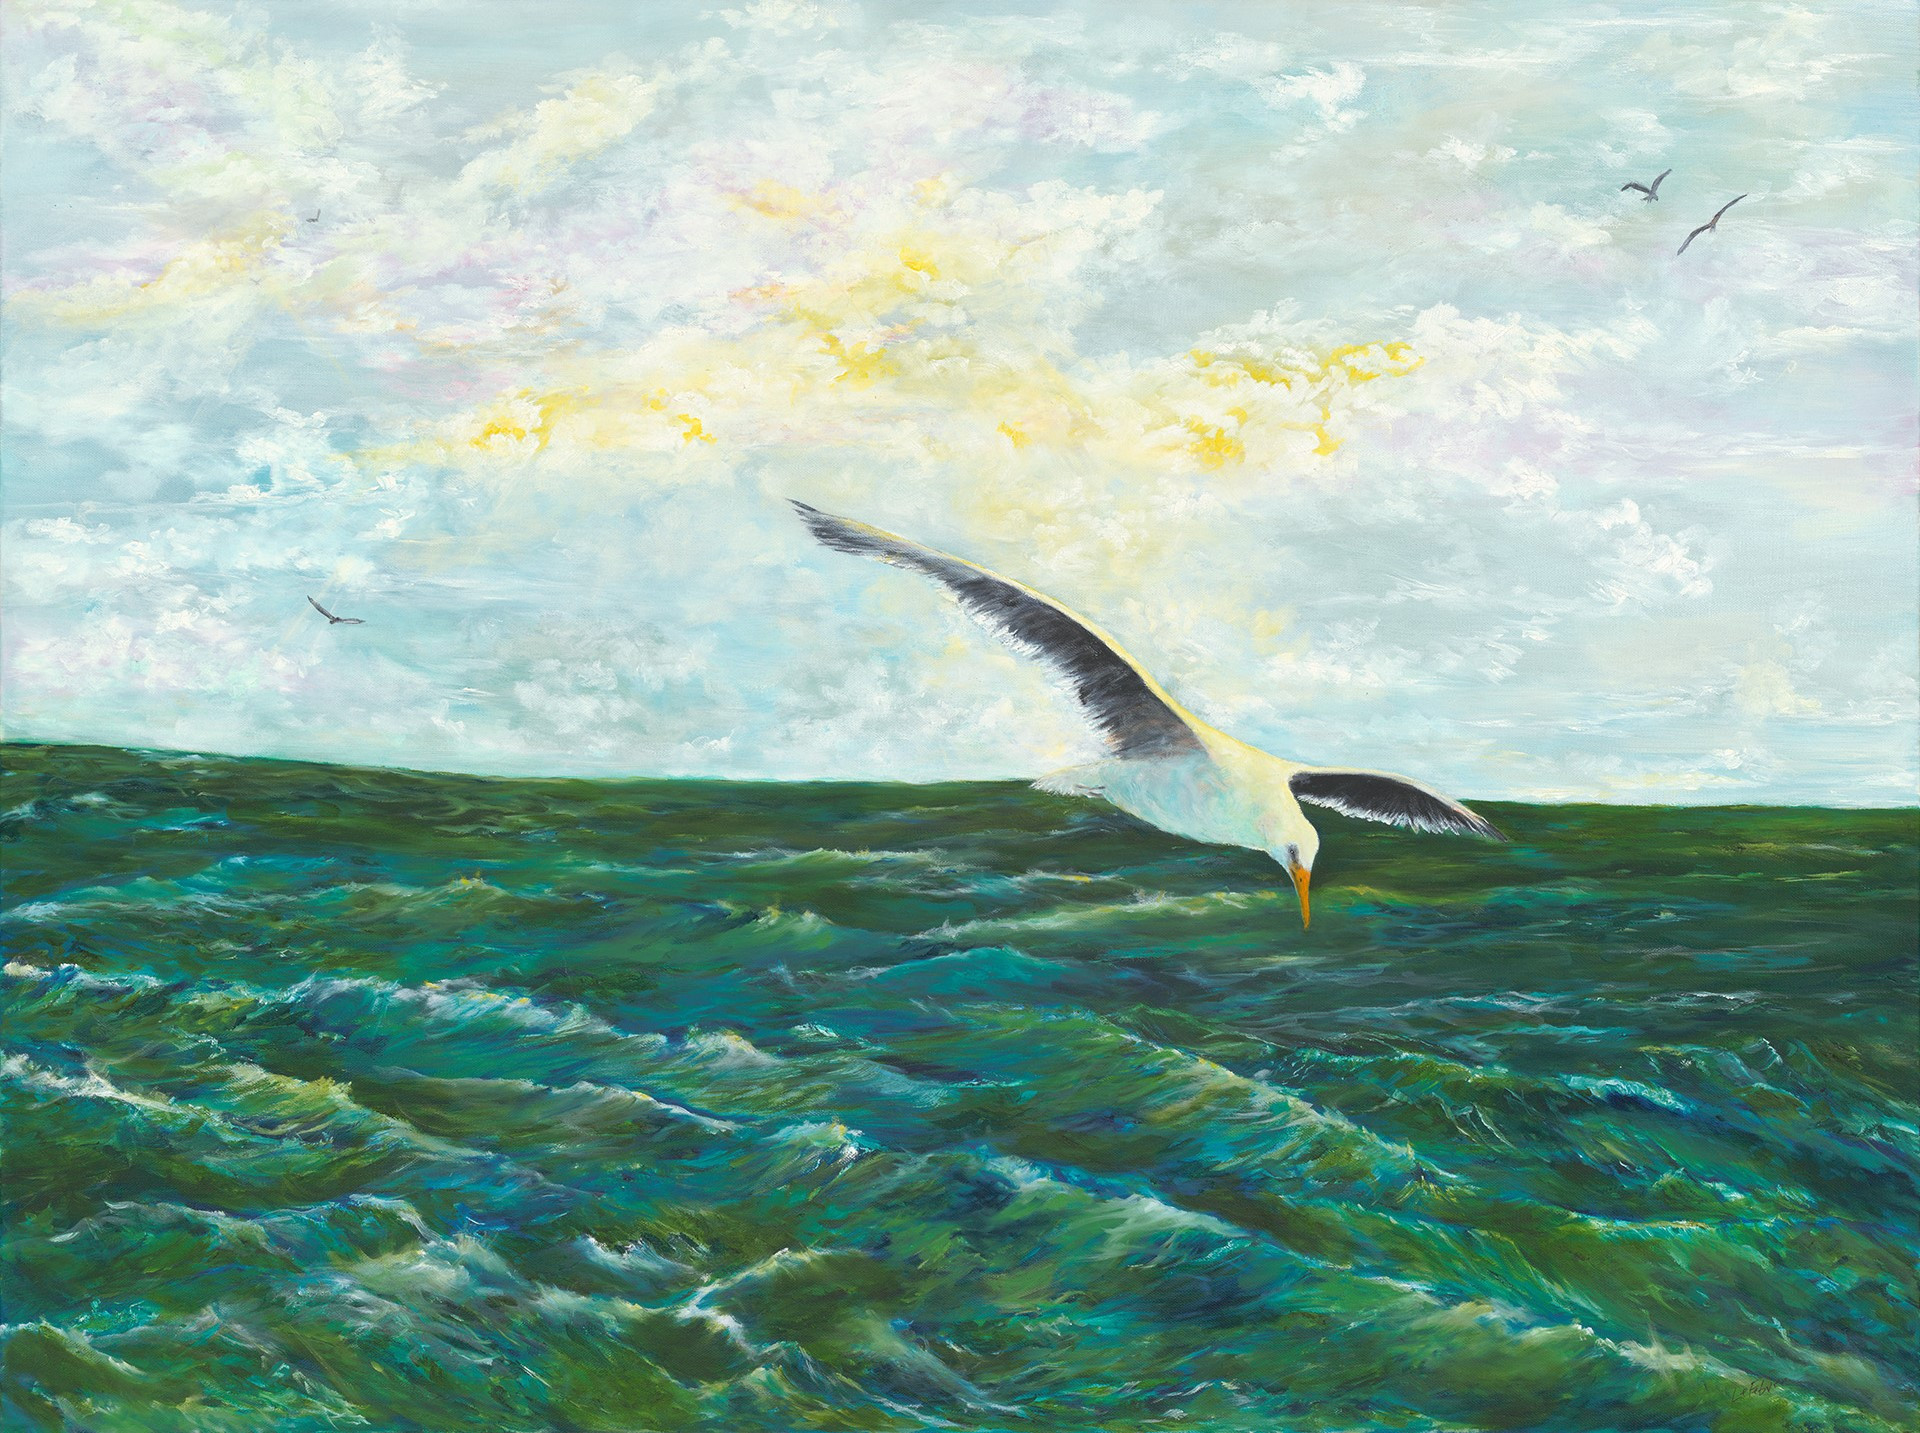 Seagulll and Sea